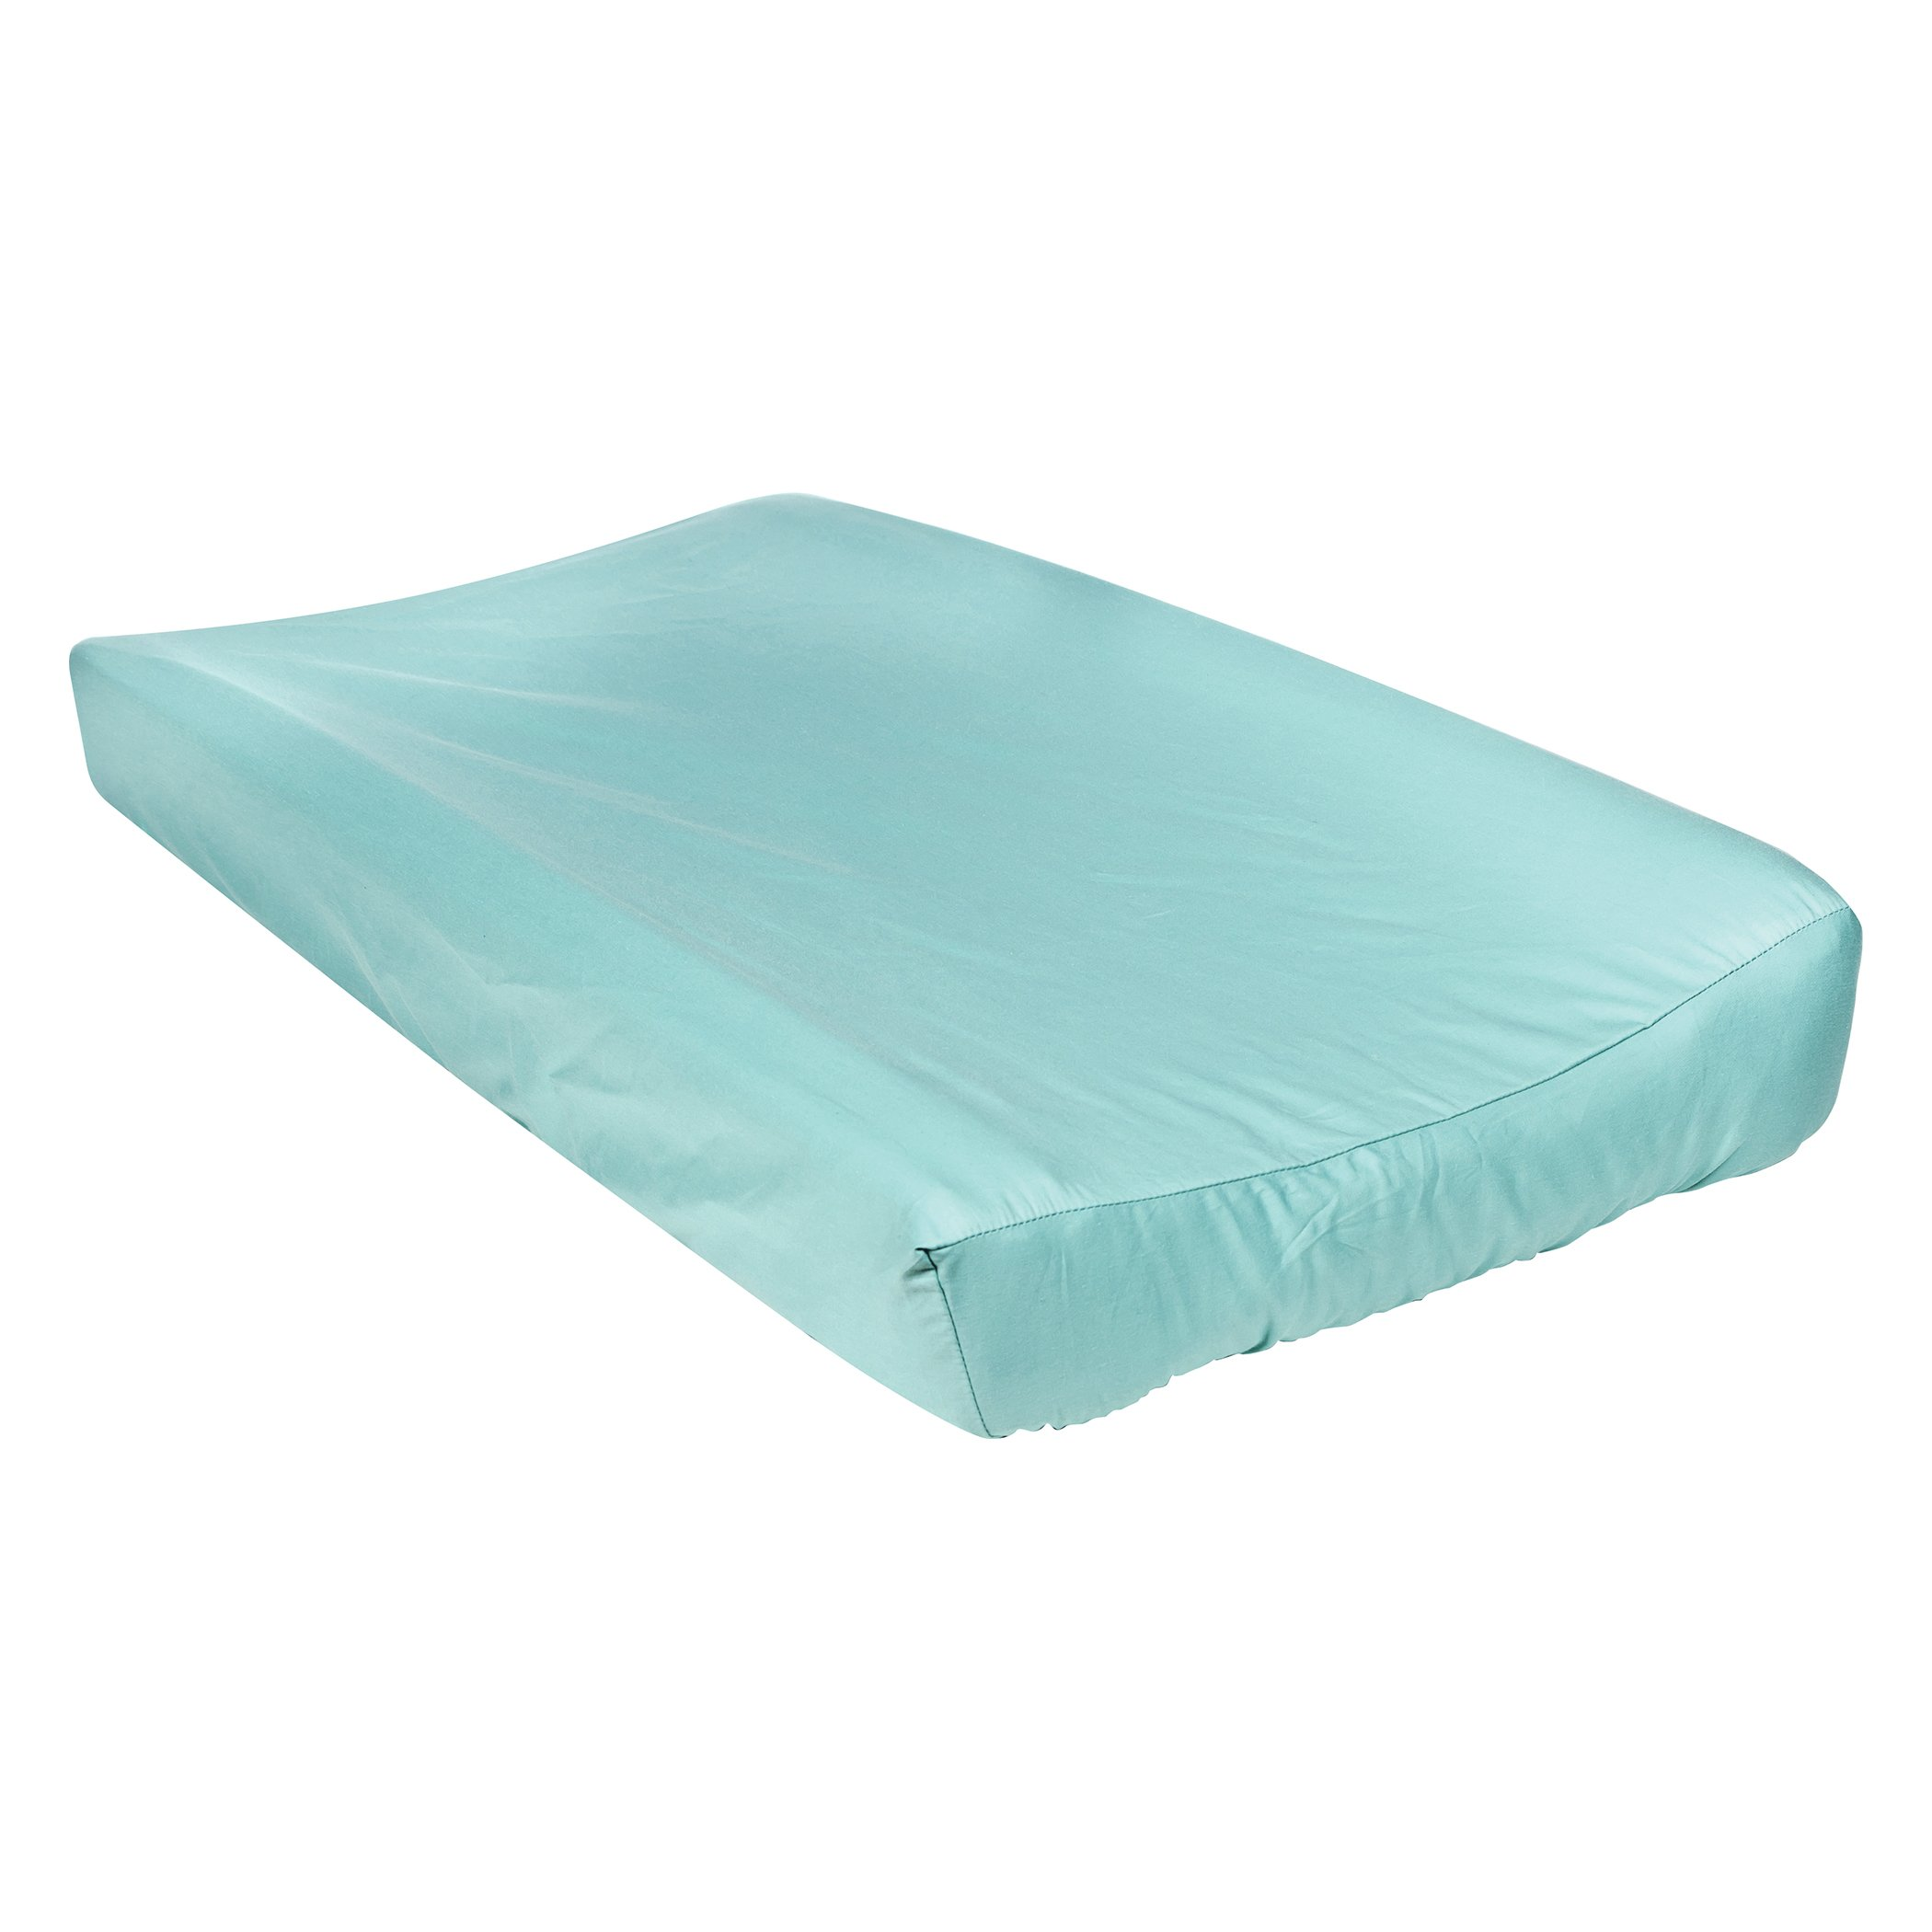 Trend Lab Waverly Pom Pom Play Changing Pad Cover, Teal